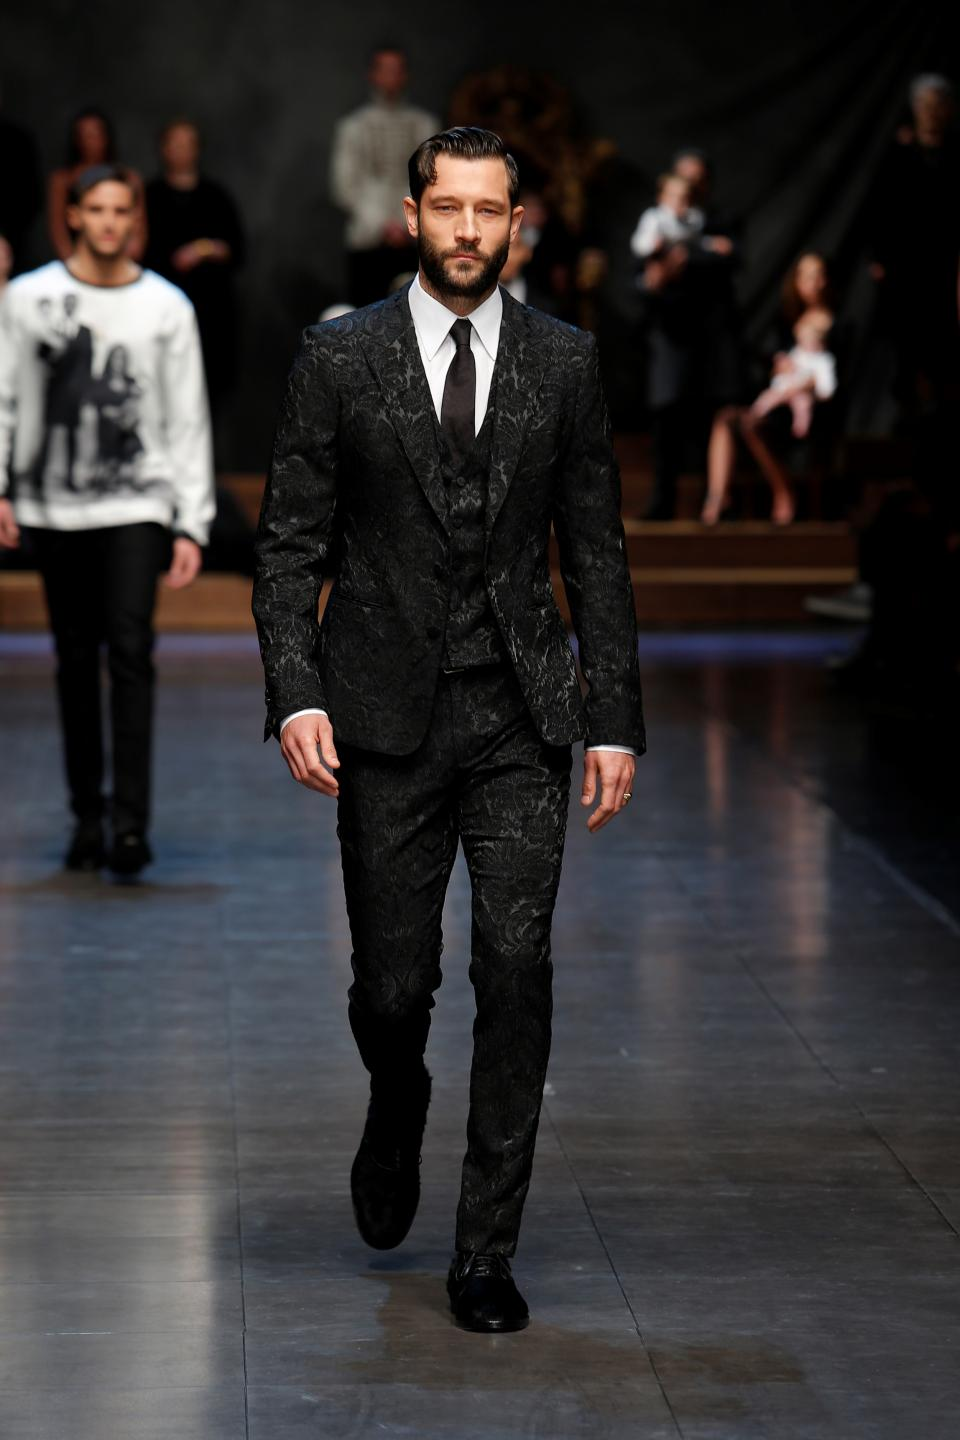 asvof-2015-01-17-dolceampgabbana_winter_2016_men039s_fashion_show-diane_pernet-1511520502